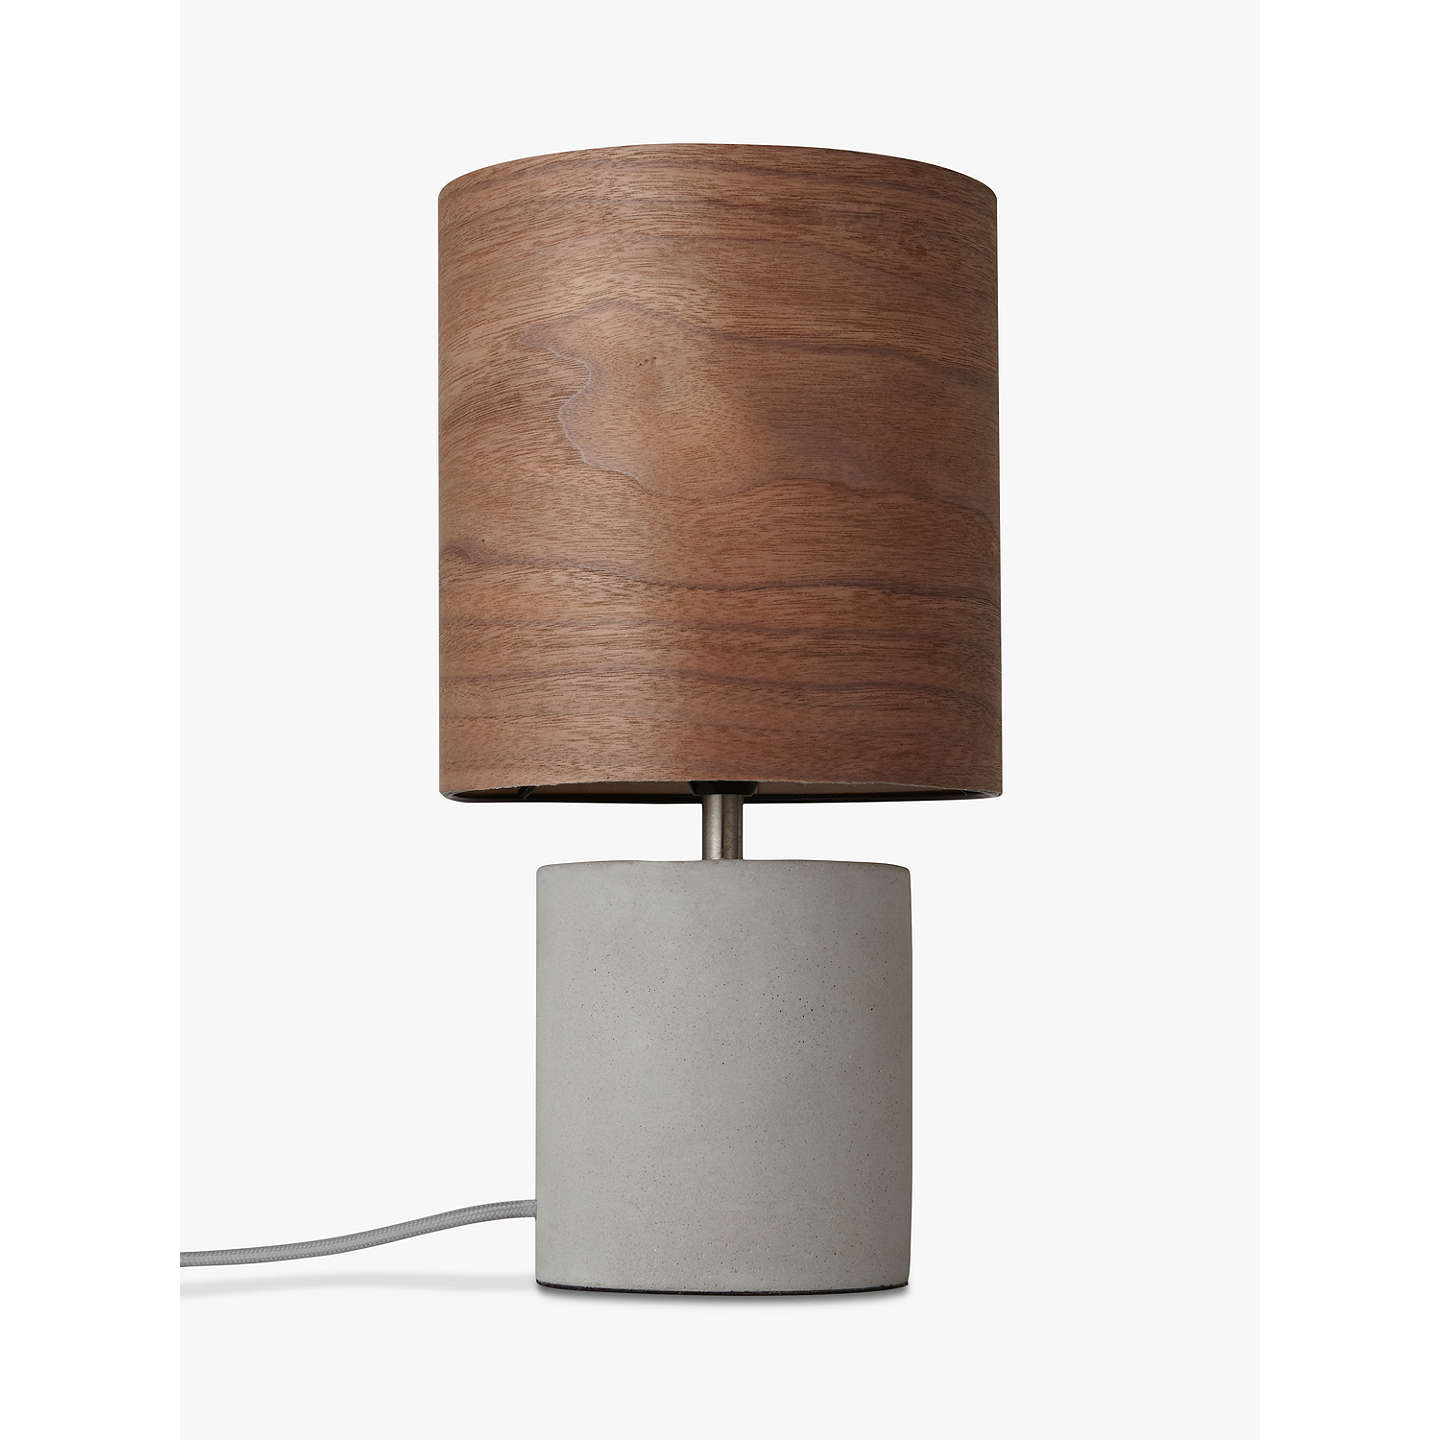 BuyDesign Project by John Lewis No.047 Table Lamp, Walnut Veneer Online at johnlewis.com